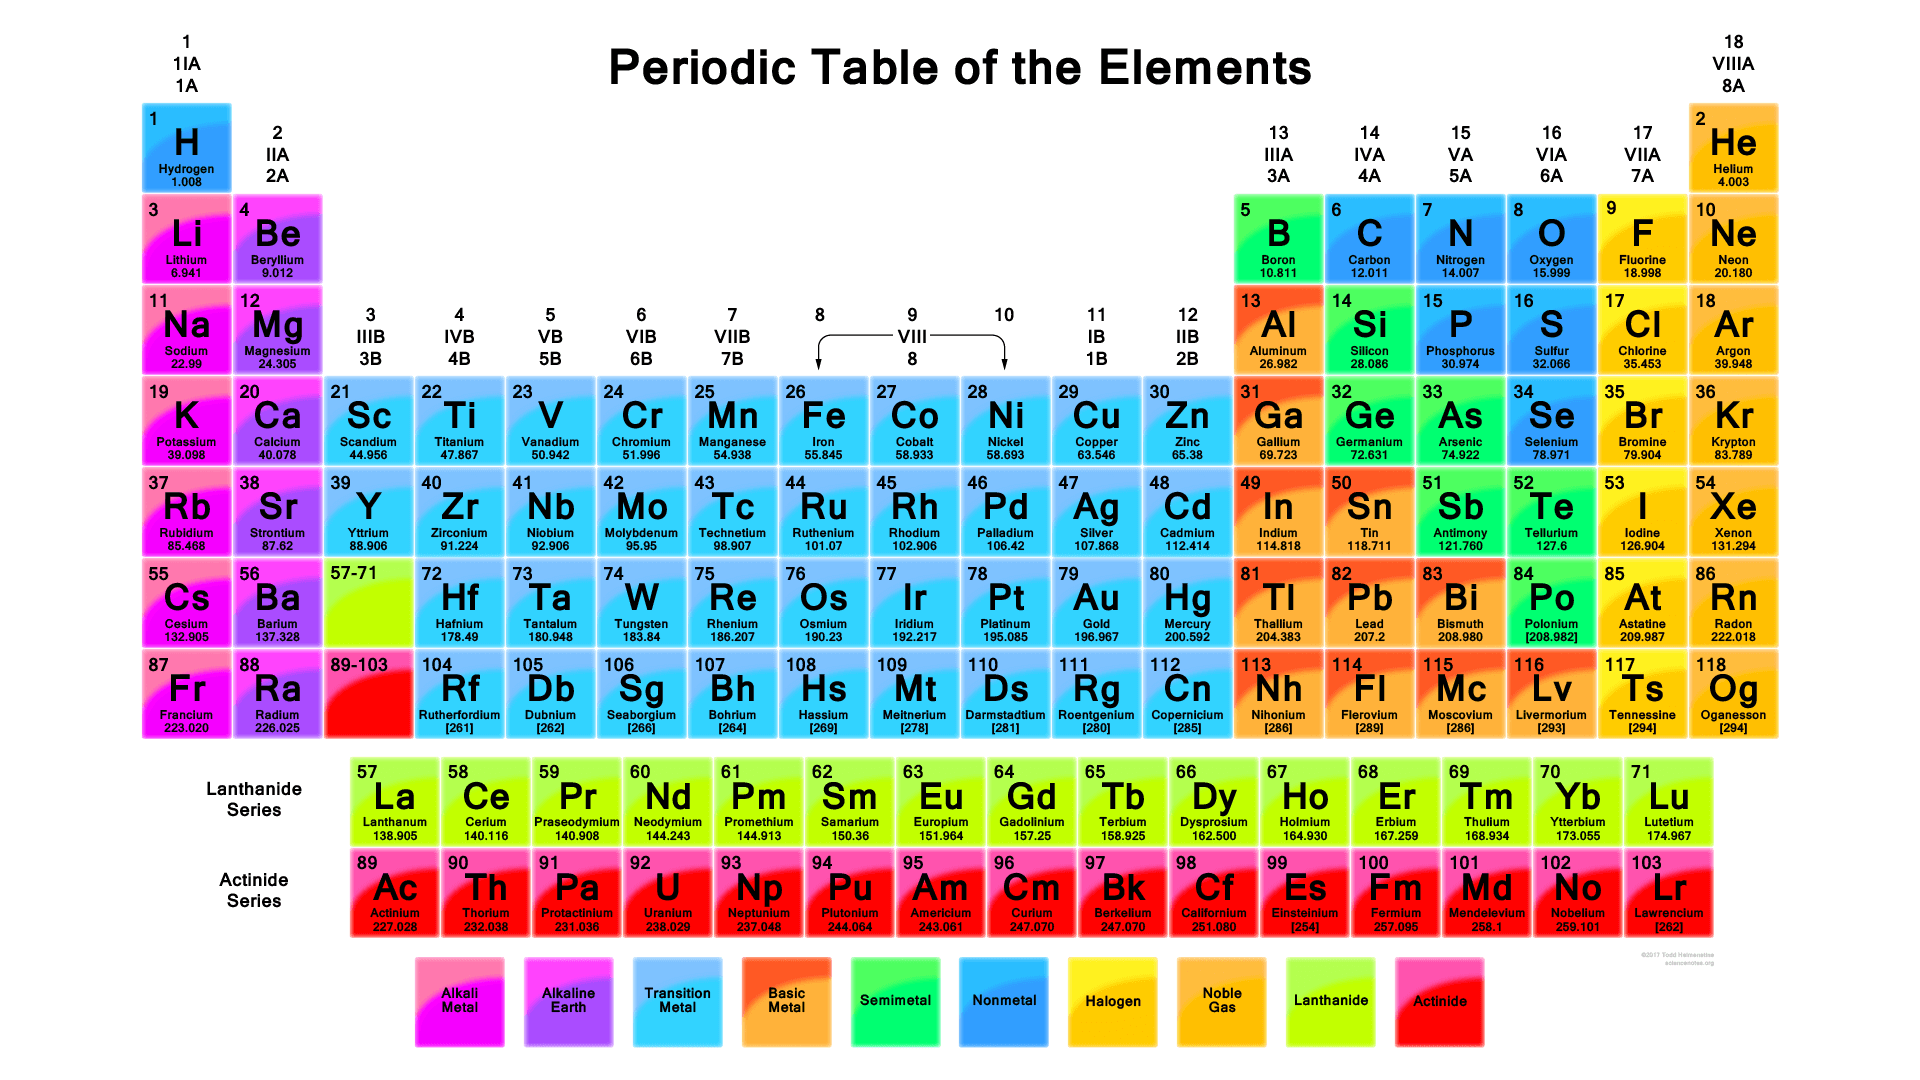 Hd wallpaper of periodic table vibrant color periodic table hd wallpaper of periodic table wallpaper 118 elements gamestrikefo Images